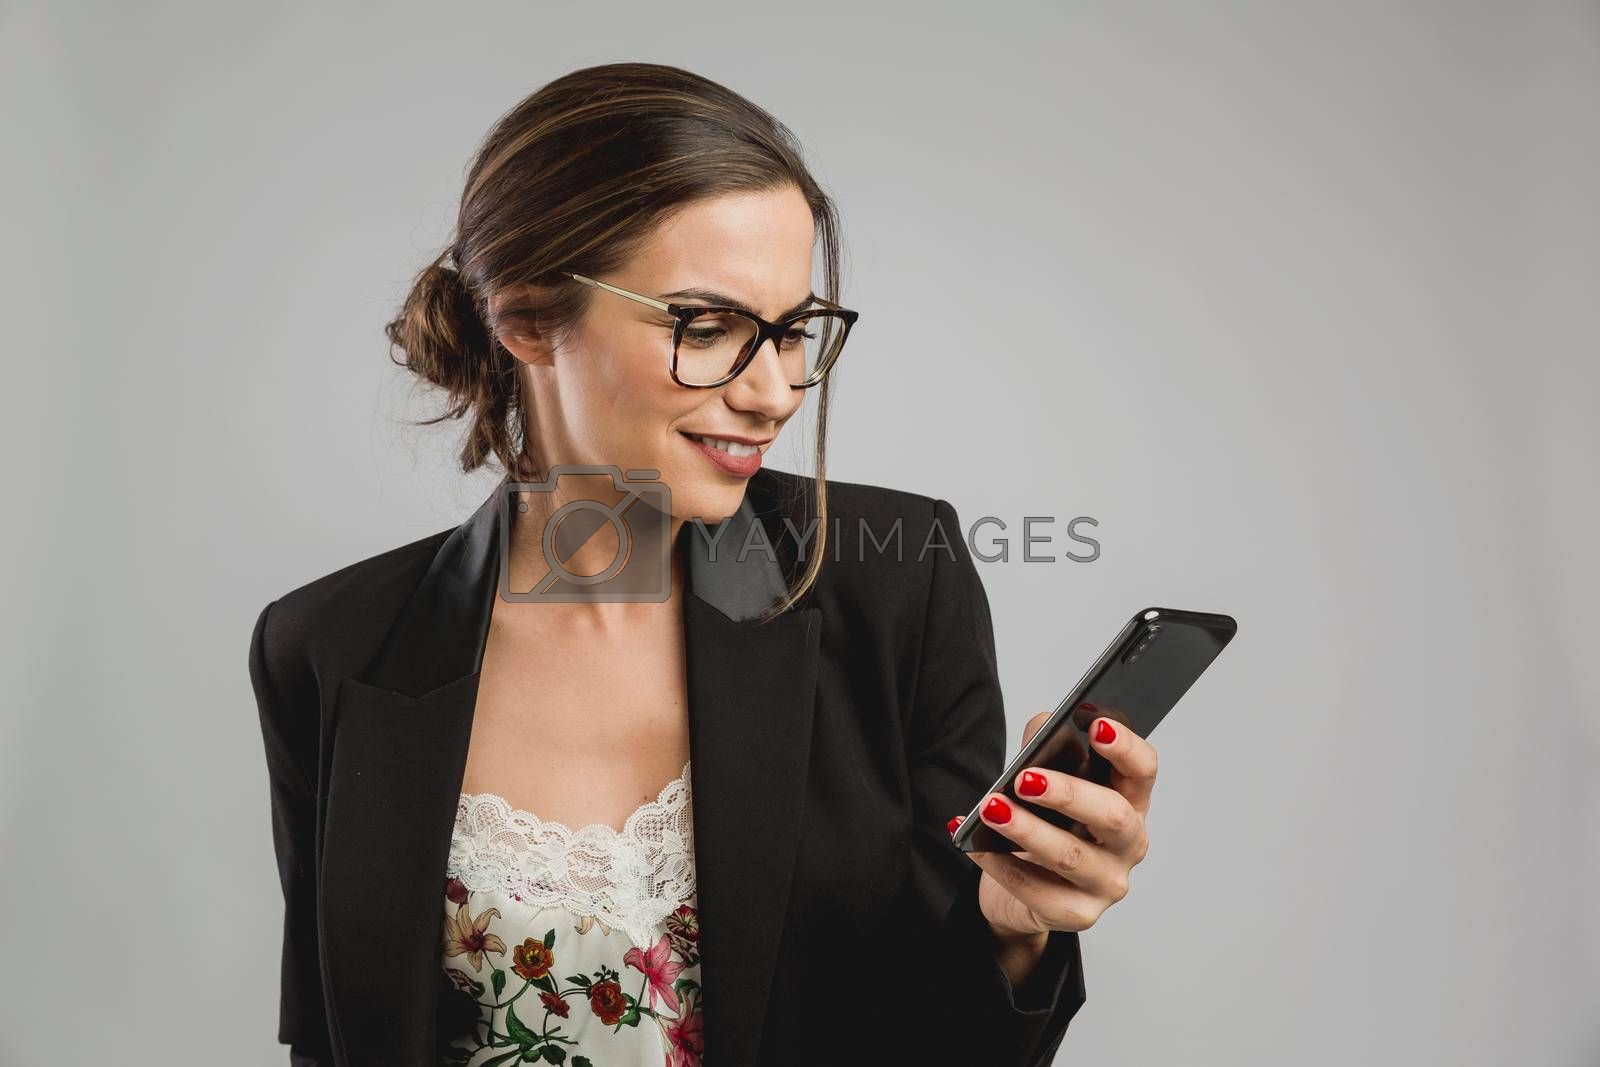 Royalty free image of Cheking my messages by Iko